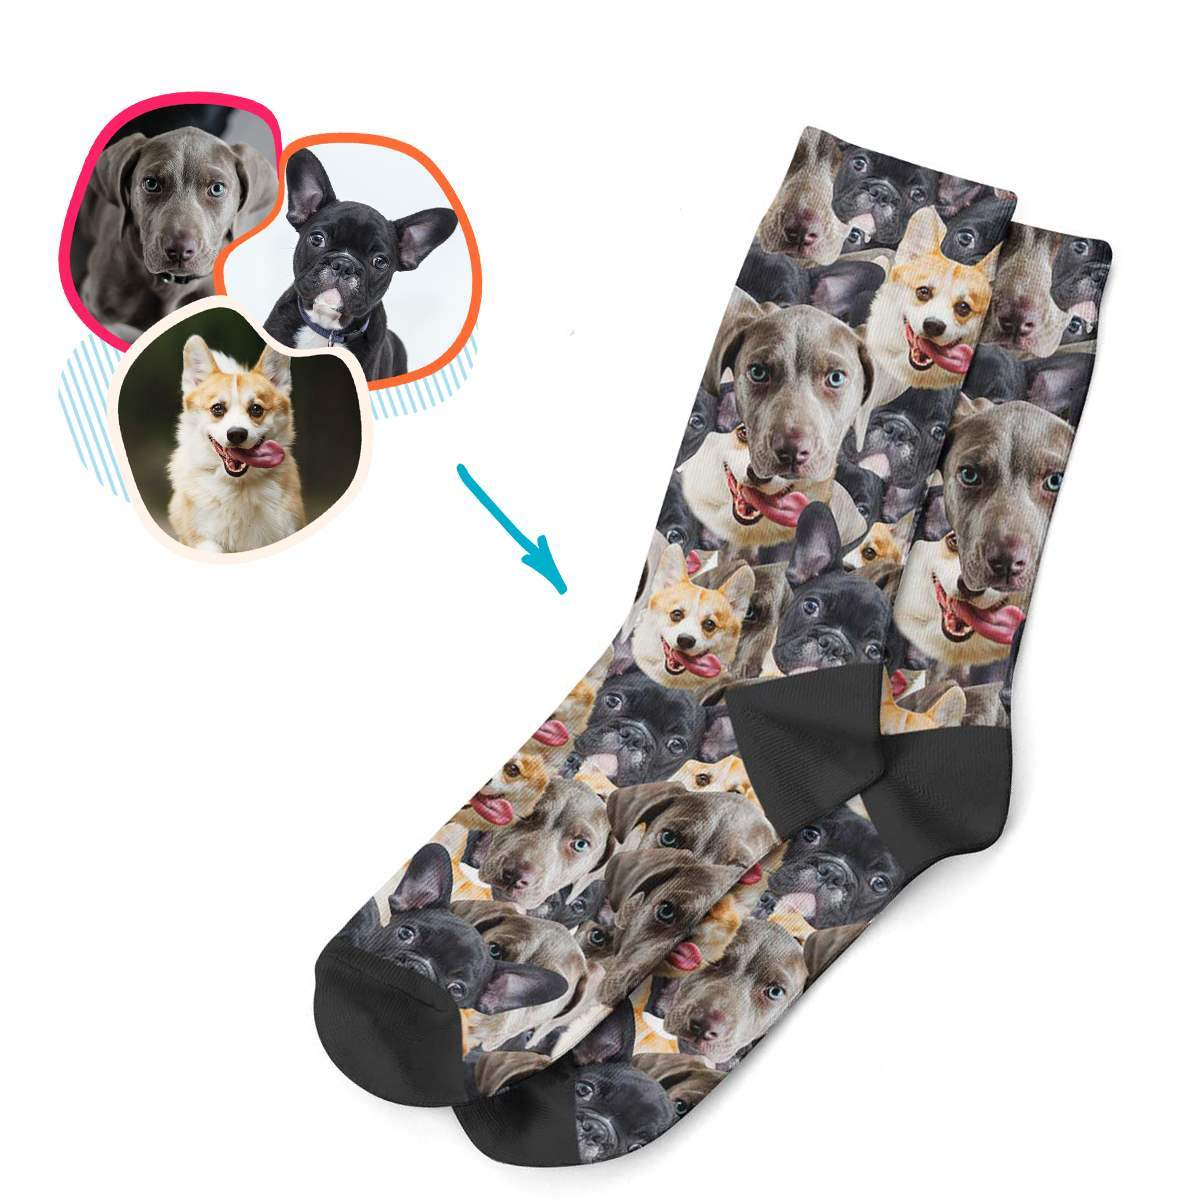 Dog Mash socks personalized with photo of face printed on them